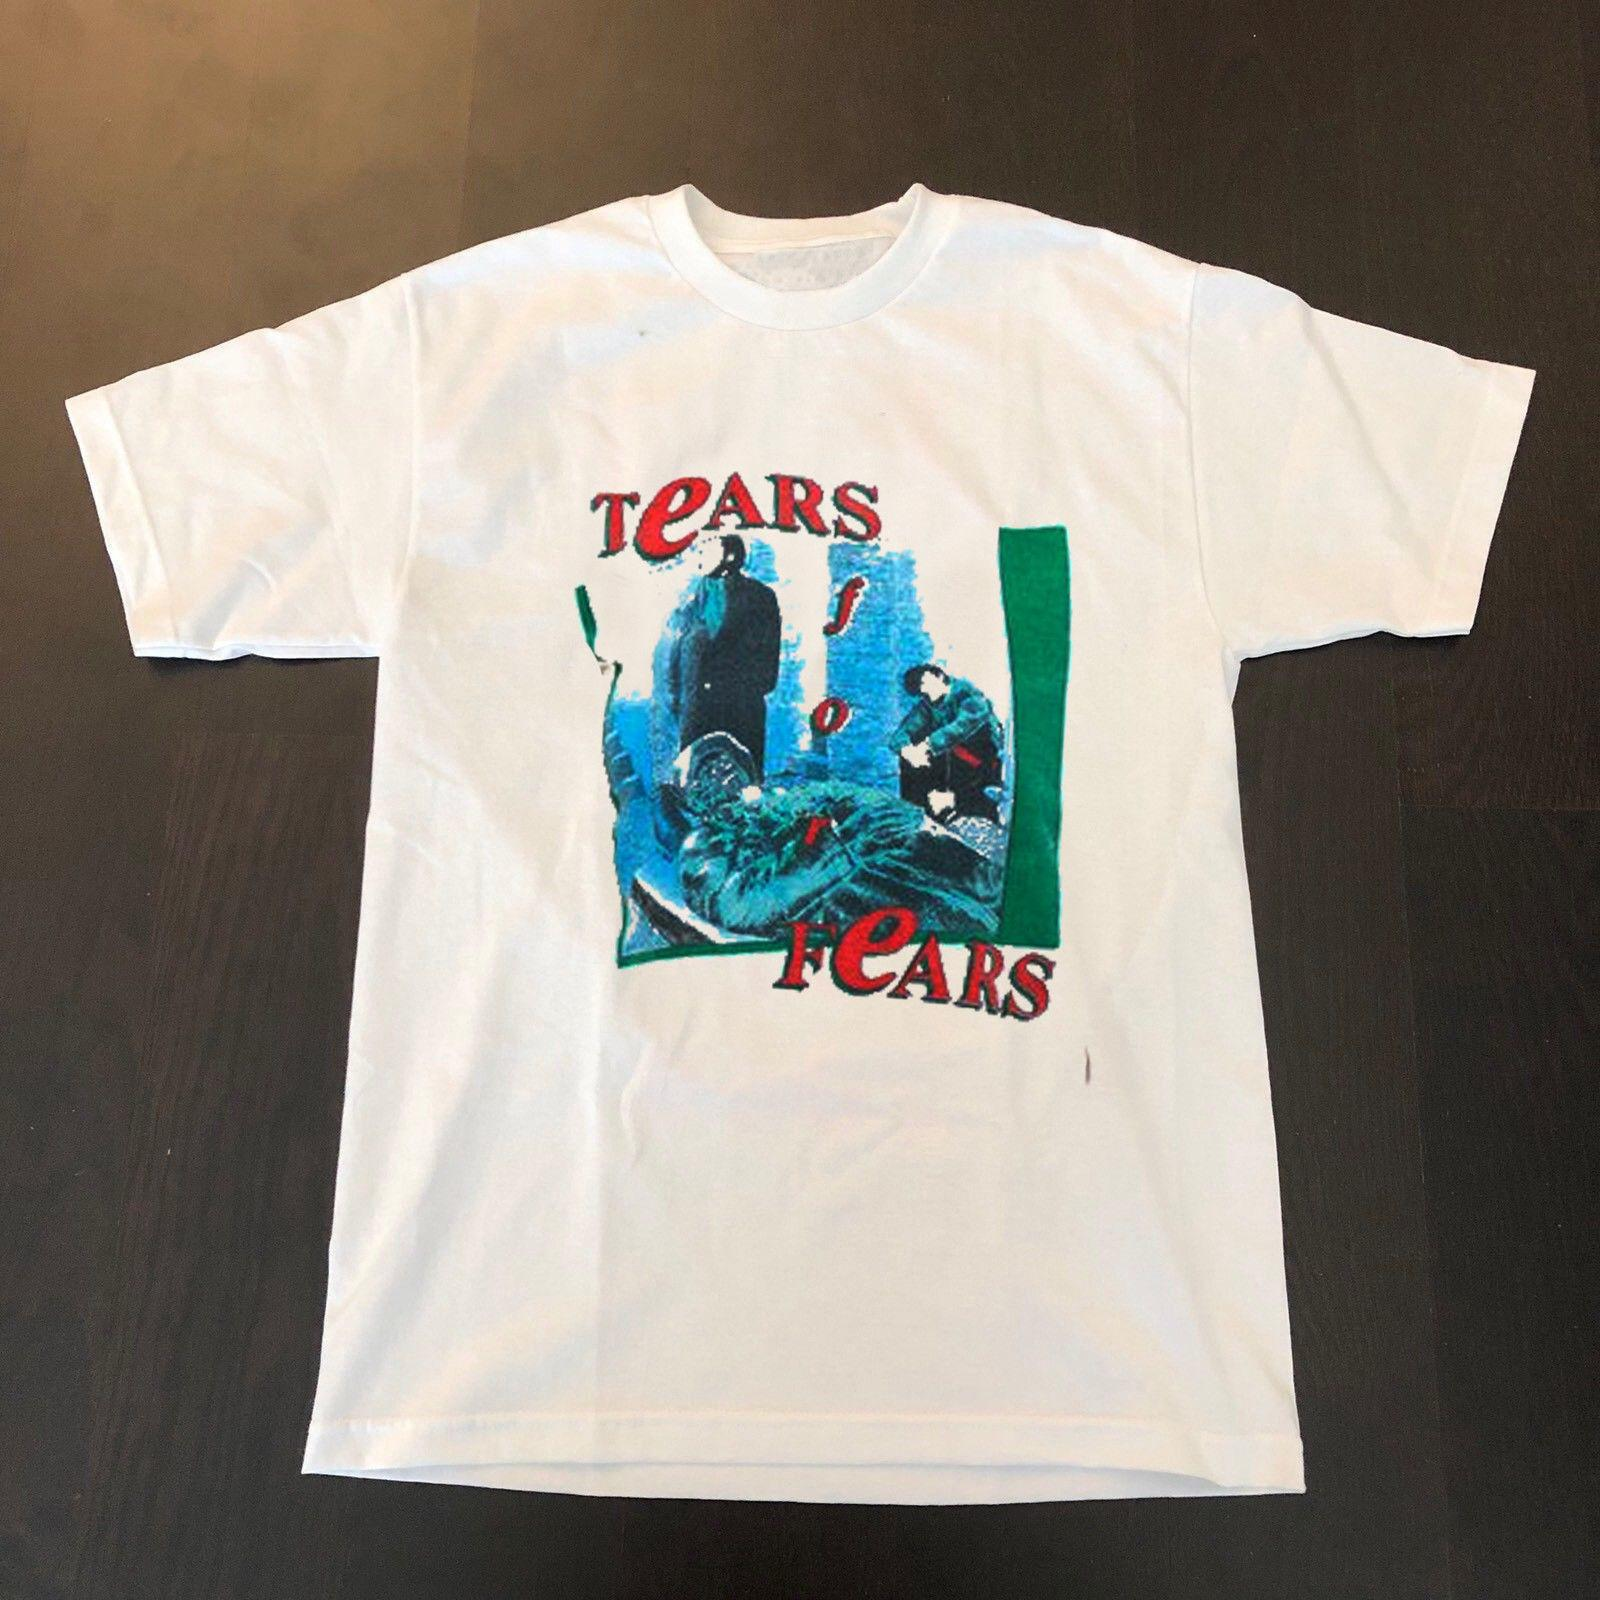 80da9737 RARE Limited Edition Vintage Tears For Fears T Shirt Band Tee 80s  Original#@ Clothes T Shirt Crazy T Shirts Designs From Joyfulandhappy57,  $11.63  DHgate.